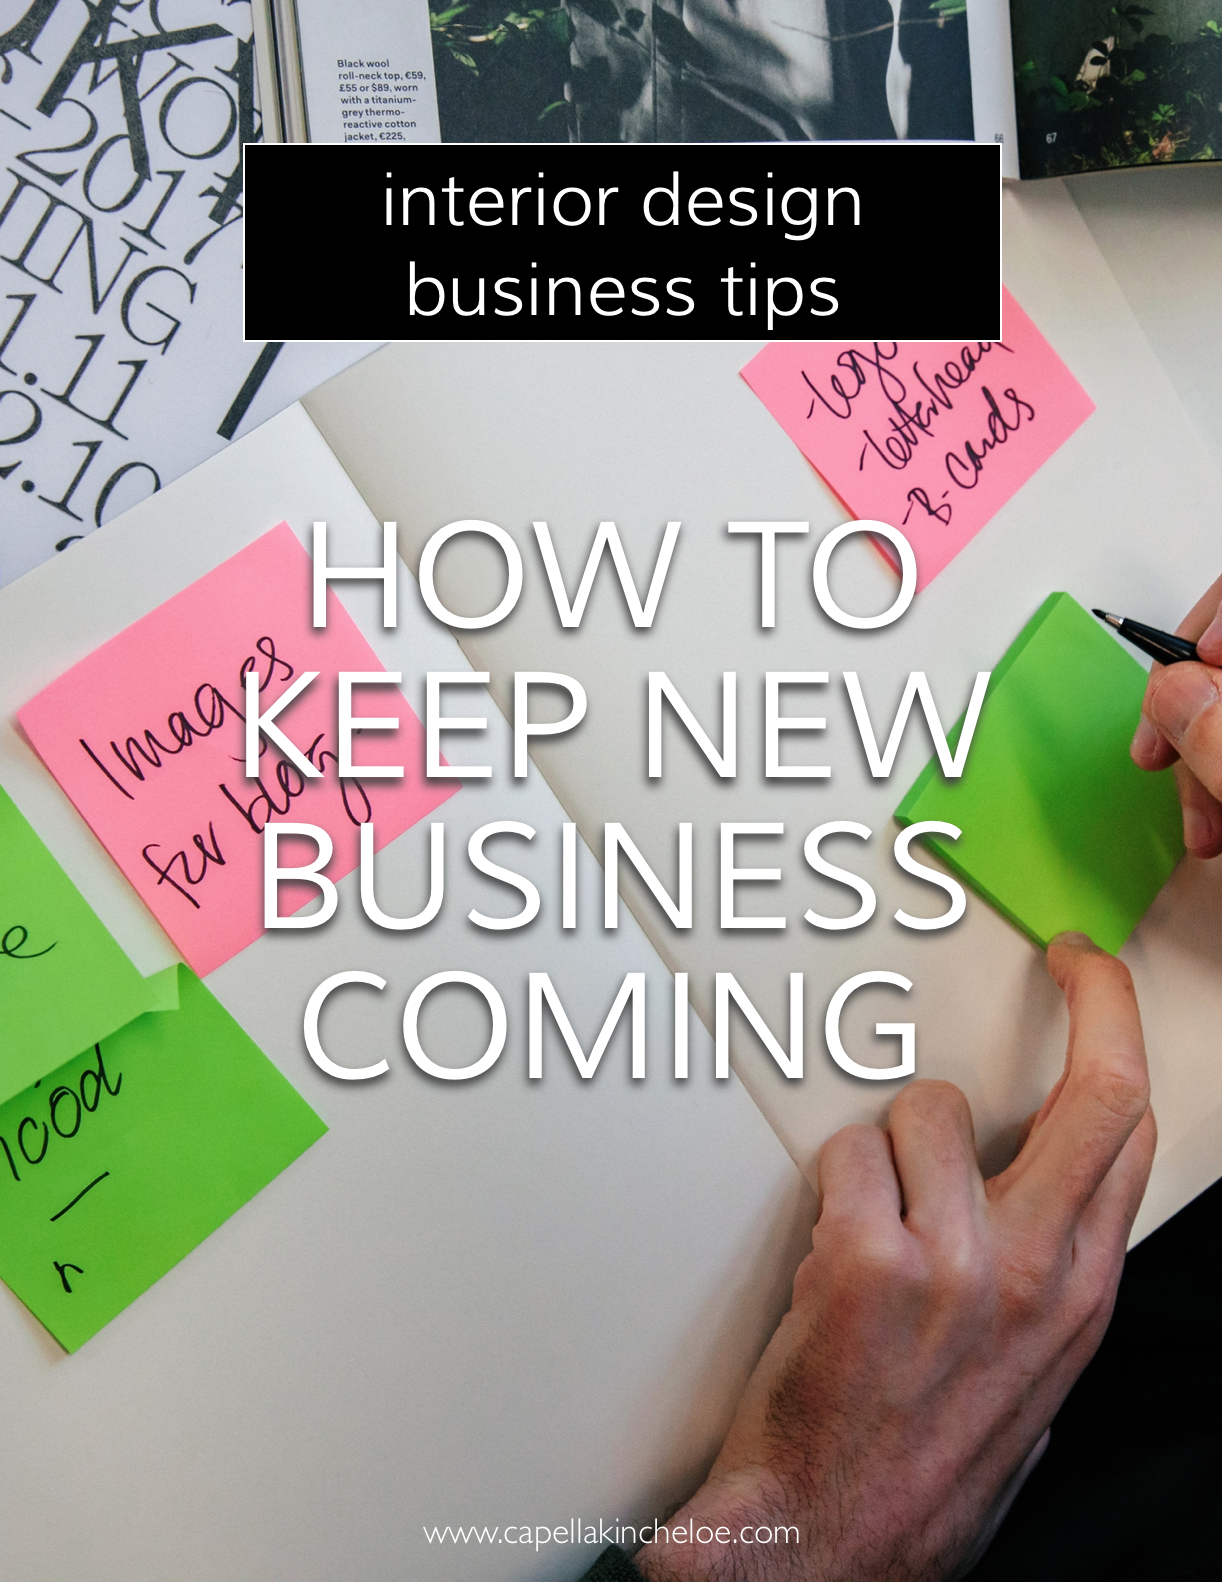 Feel like you are always going through periods of busy and slow periods in your interior design business? There are some strategies that you can implement easily to keep new business coming in regularly. #interiordesignbusiness #interiordecorator #capellakincheloe #cktradesecrets #interiordesignceo